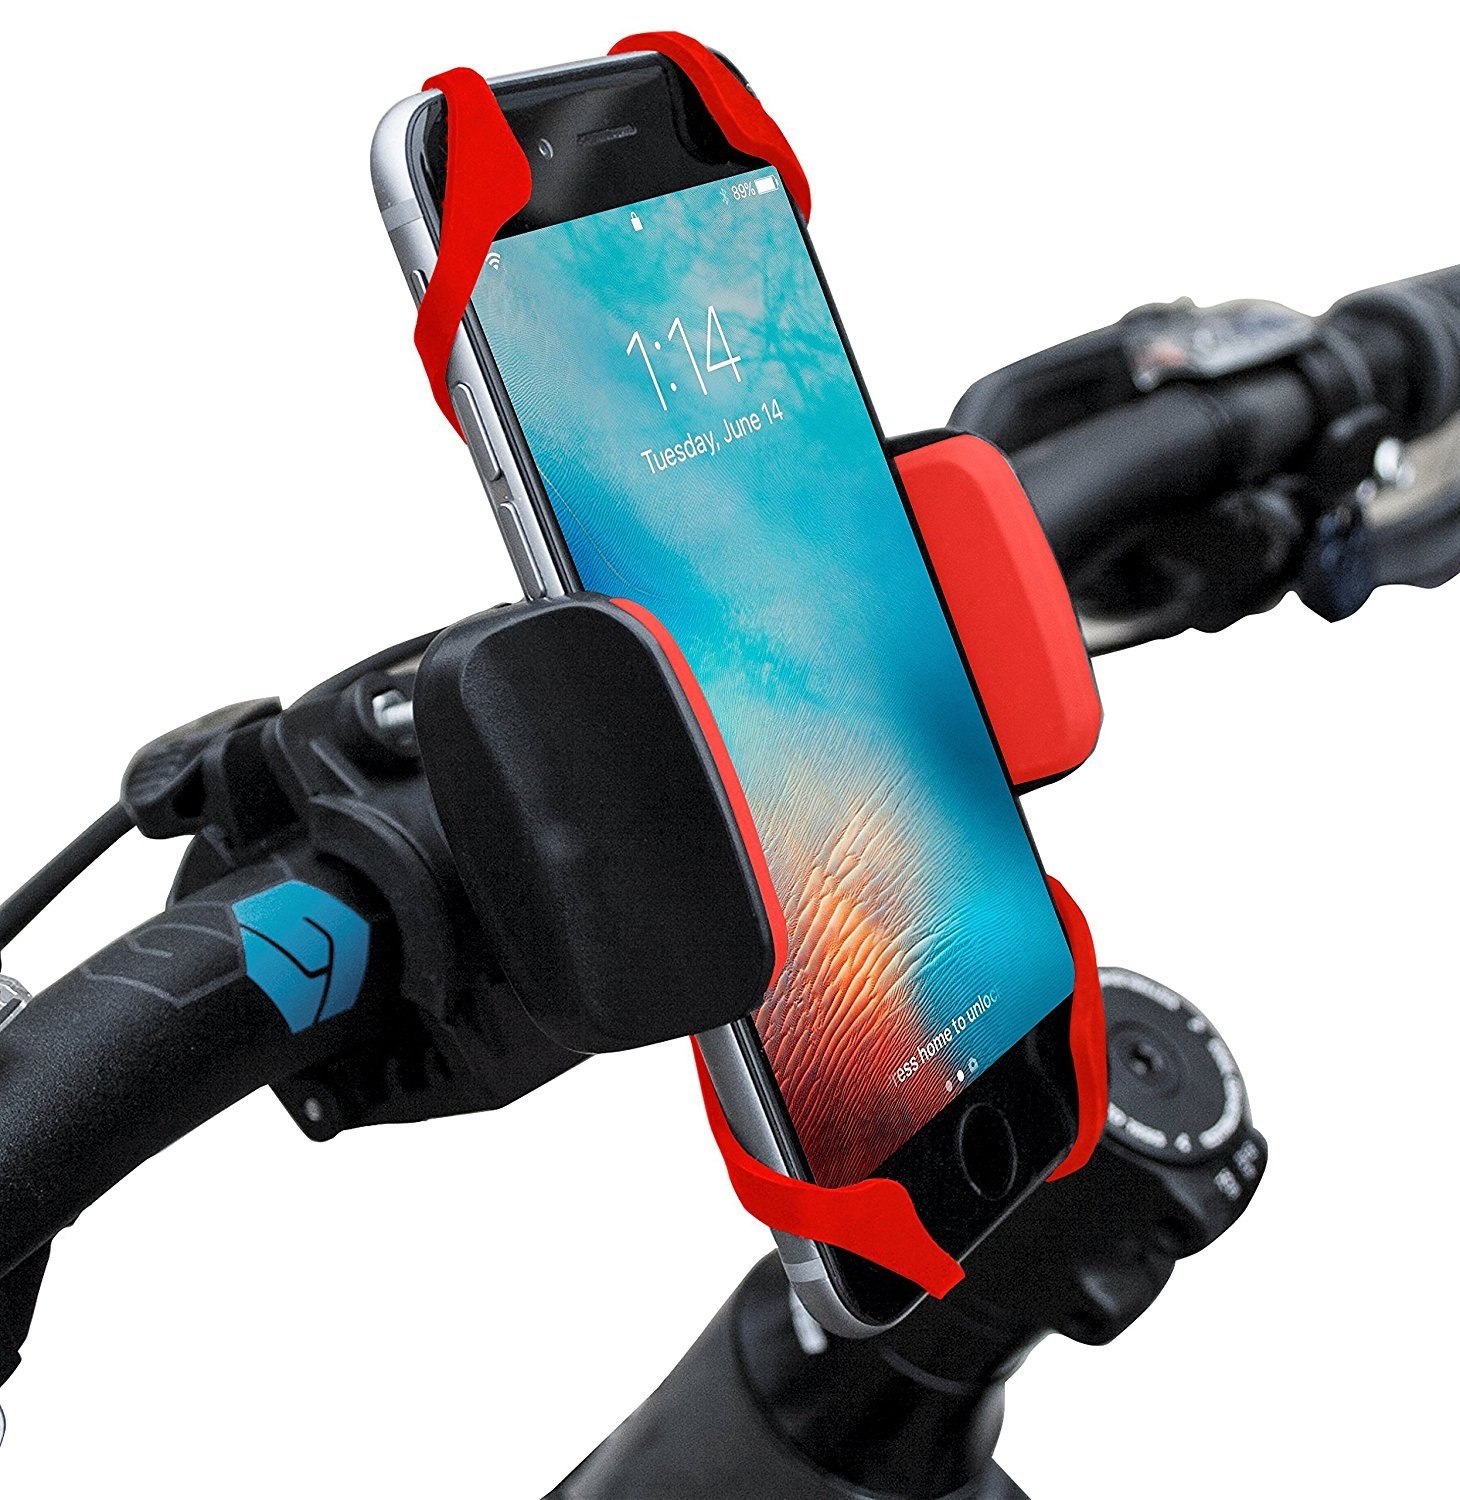 all Phones ,RED iphone 4//5//6//6+//7//7+// Samsung //LG//HTC Bike Mount 360 degree rotation 4351570368 RJADO Universal Cell Phone Bicycle Rack Handlebar /& Motorcycle Holder Cradle for All Phones and All Sizes